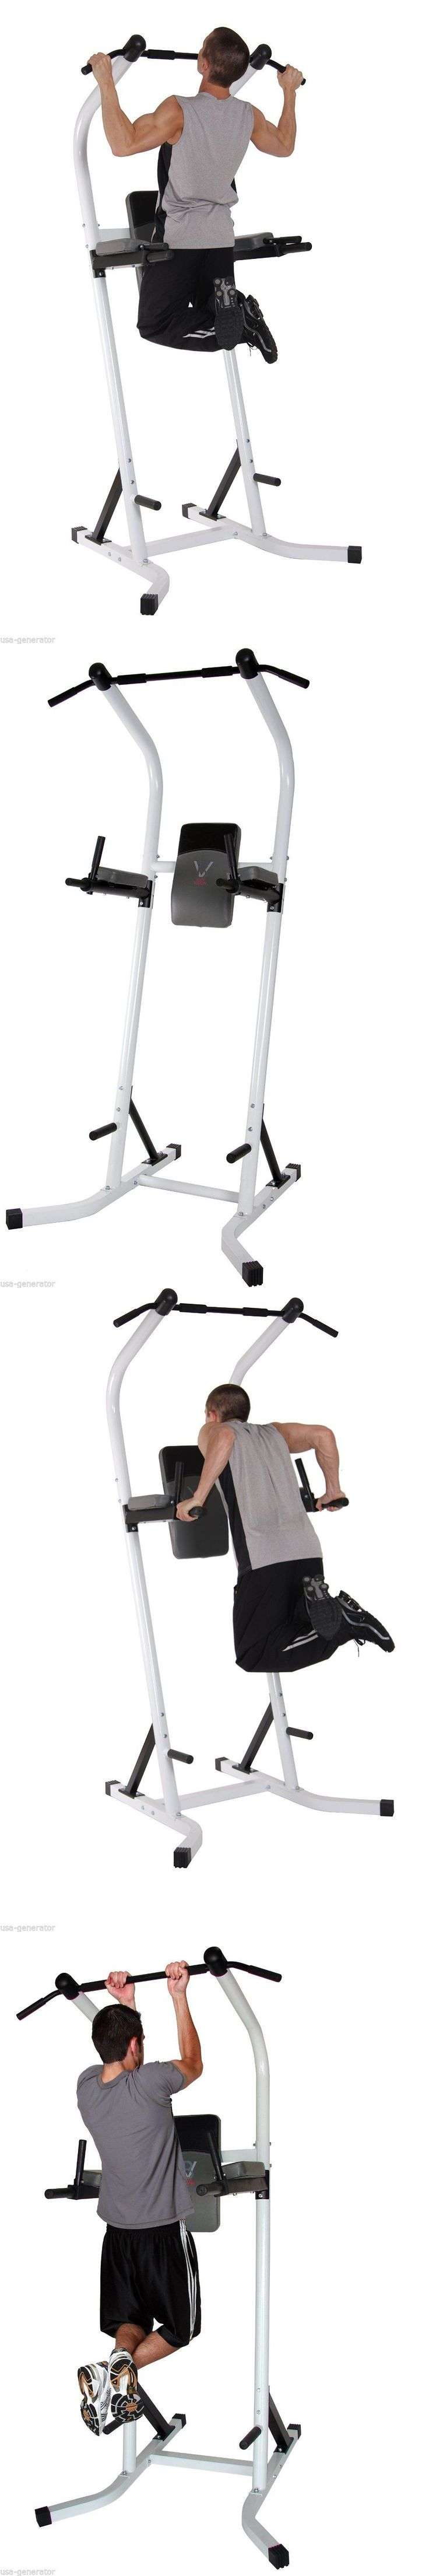 Pull Up Bars 179816: Power Tower Vkr Push Pull Chin Up And Dip Station Raise Home Gym 250Lb Max New -> BUY IT NOW ONLY: $195.34 on eBay!